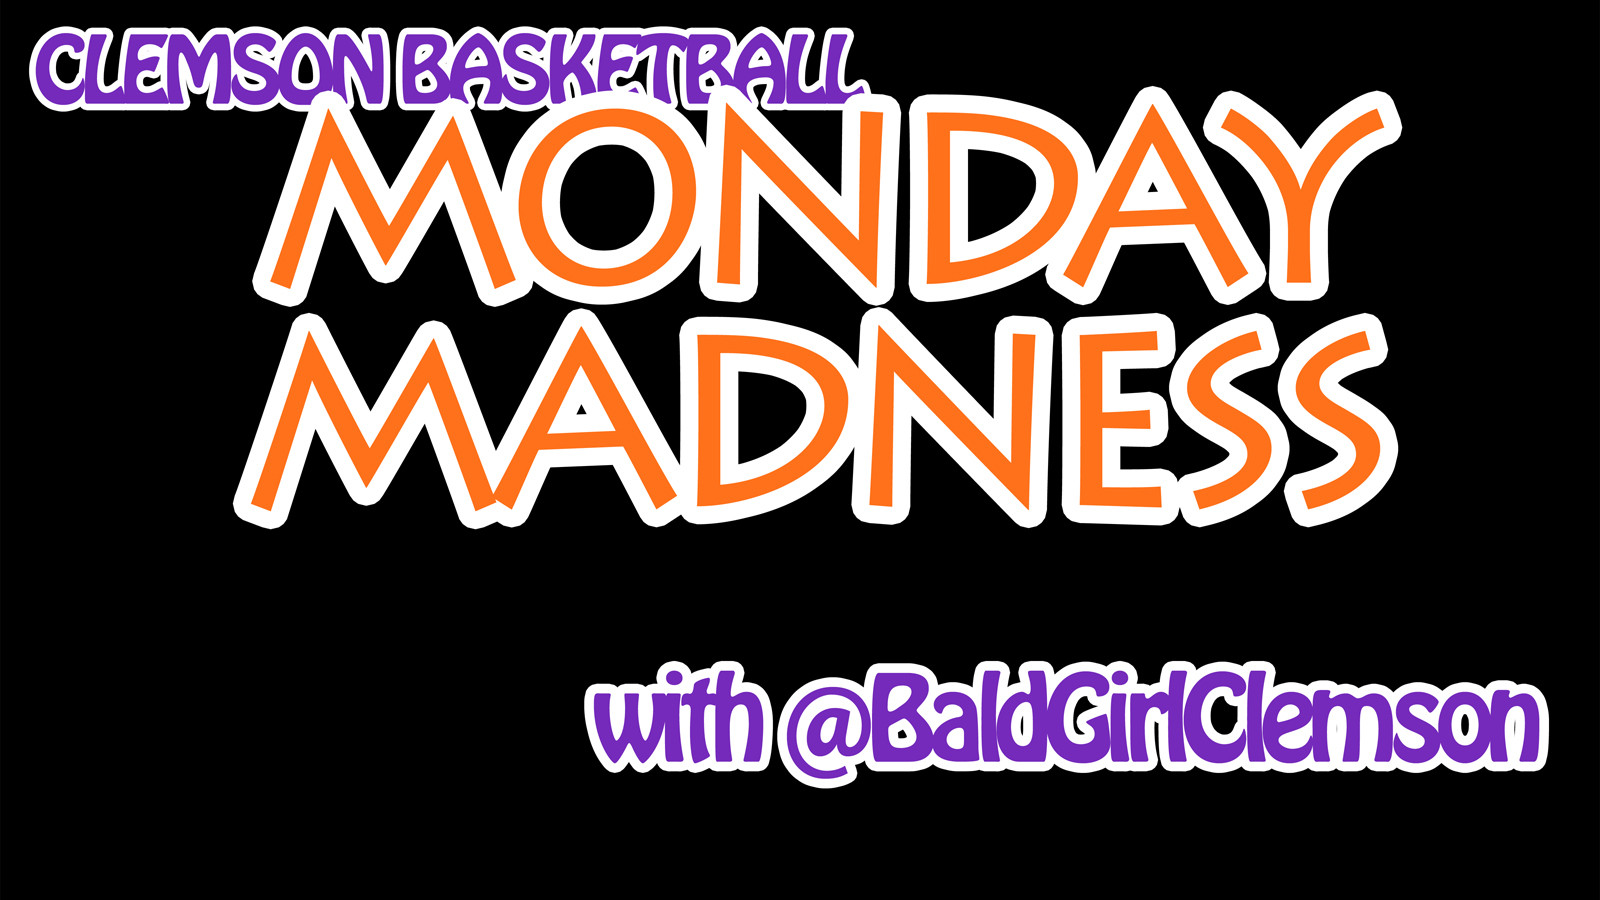 Monday Madness on ClemsonTigers.com: K.J. McDaniels